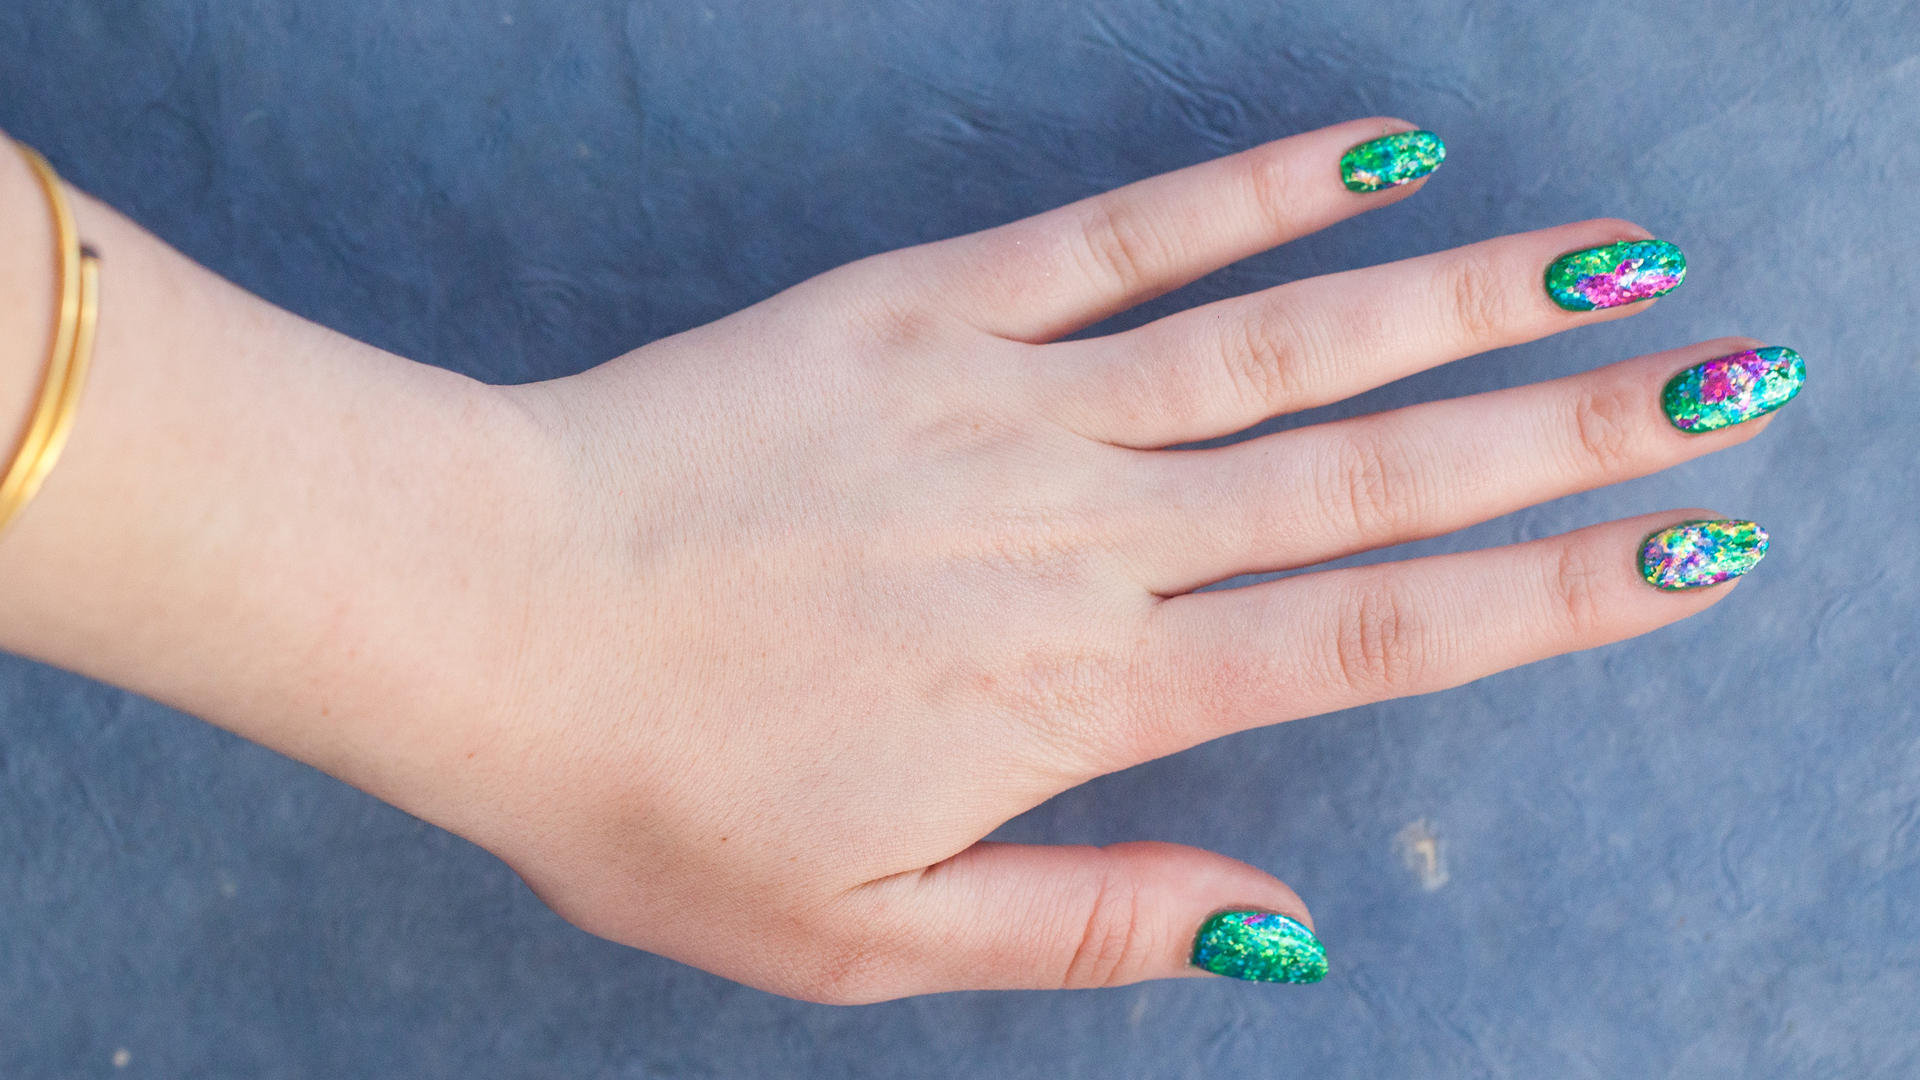 Nail art trend: How to get foil nails in less than 5 steps